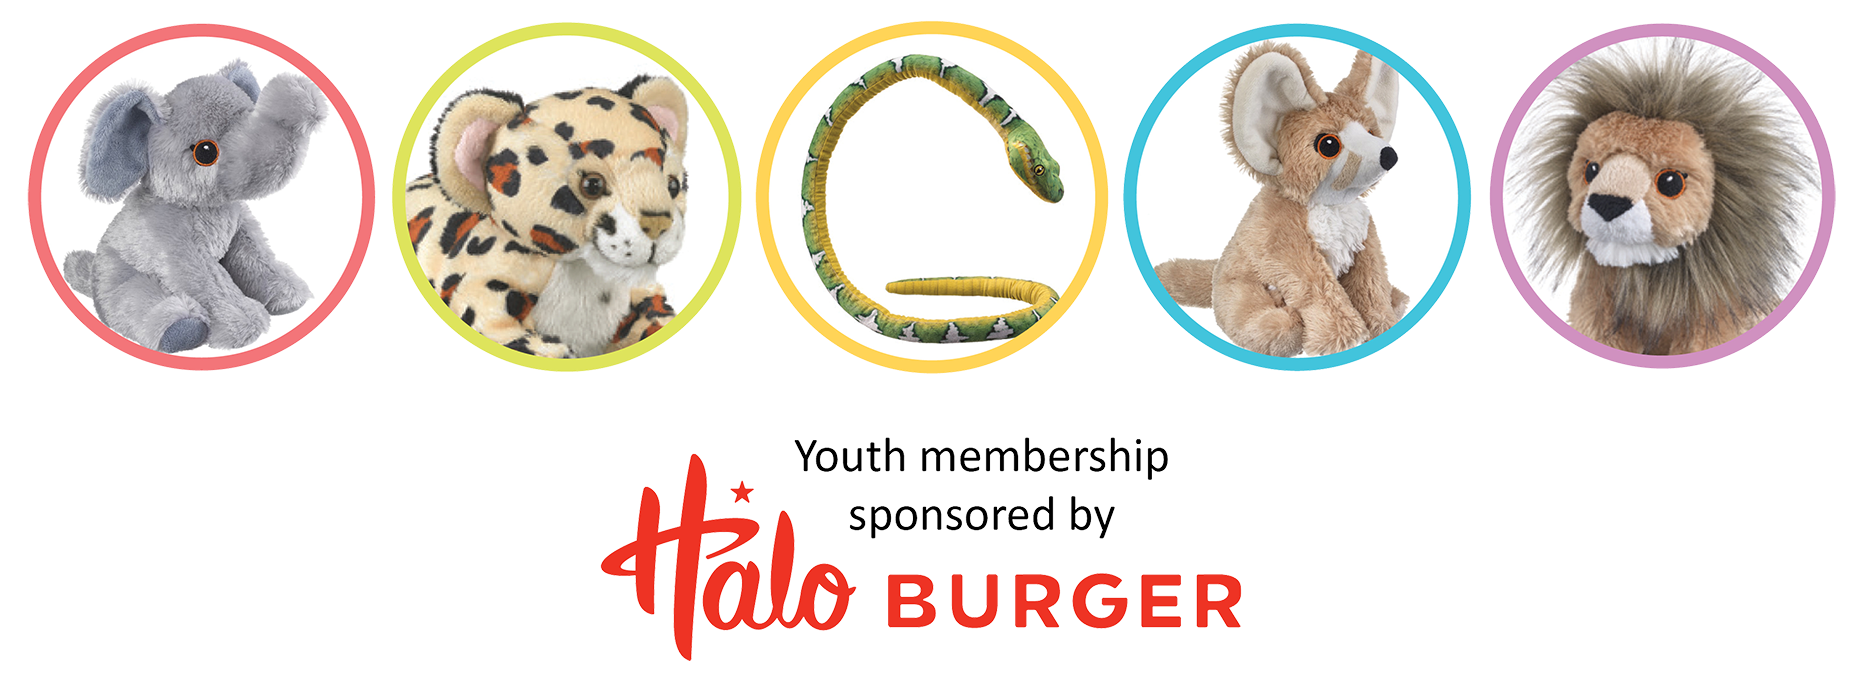 FIA Youth Membership stuffed animals | Sponsored by Halo Burger